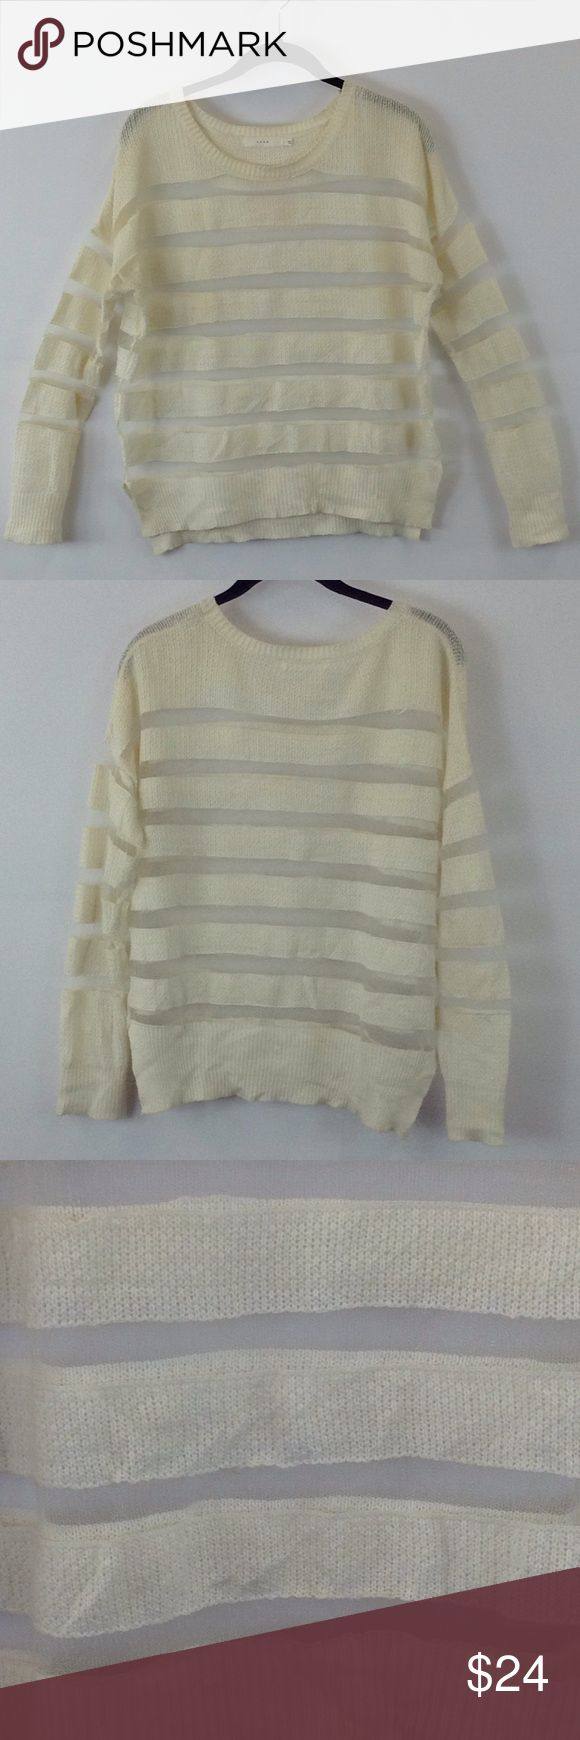 "Lush cream long sleeve top size small Lush cream long sleeve top size small Bust 46"" Waist 42"" Lush Tops Tees - Long Sleeve"